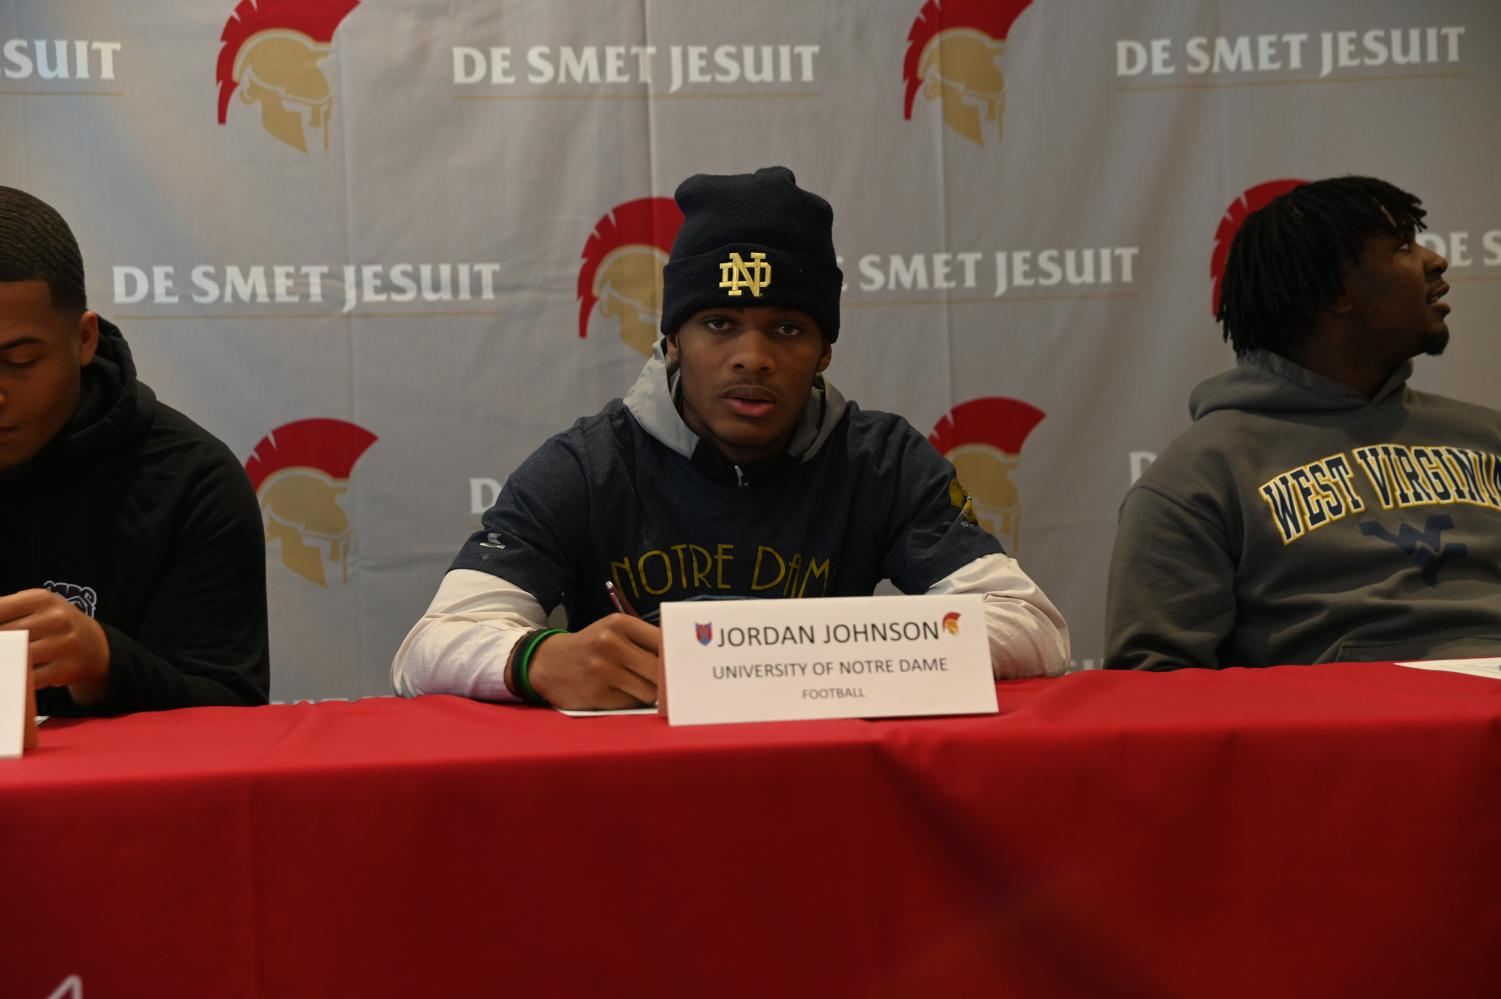 Senior Jordan Johnson poses for a photo prior to signing to the University of Notre Dame.